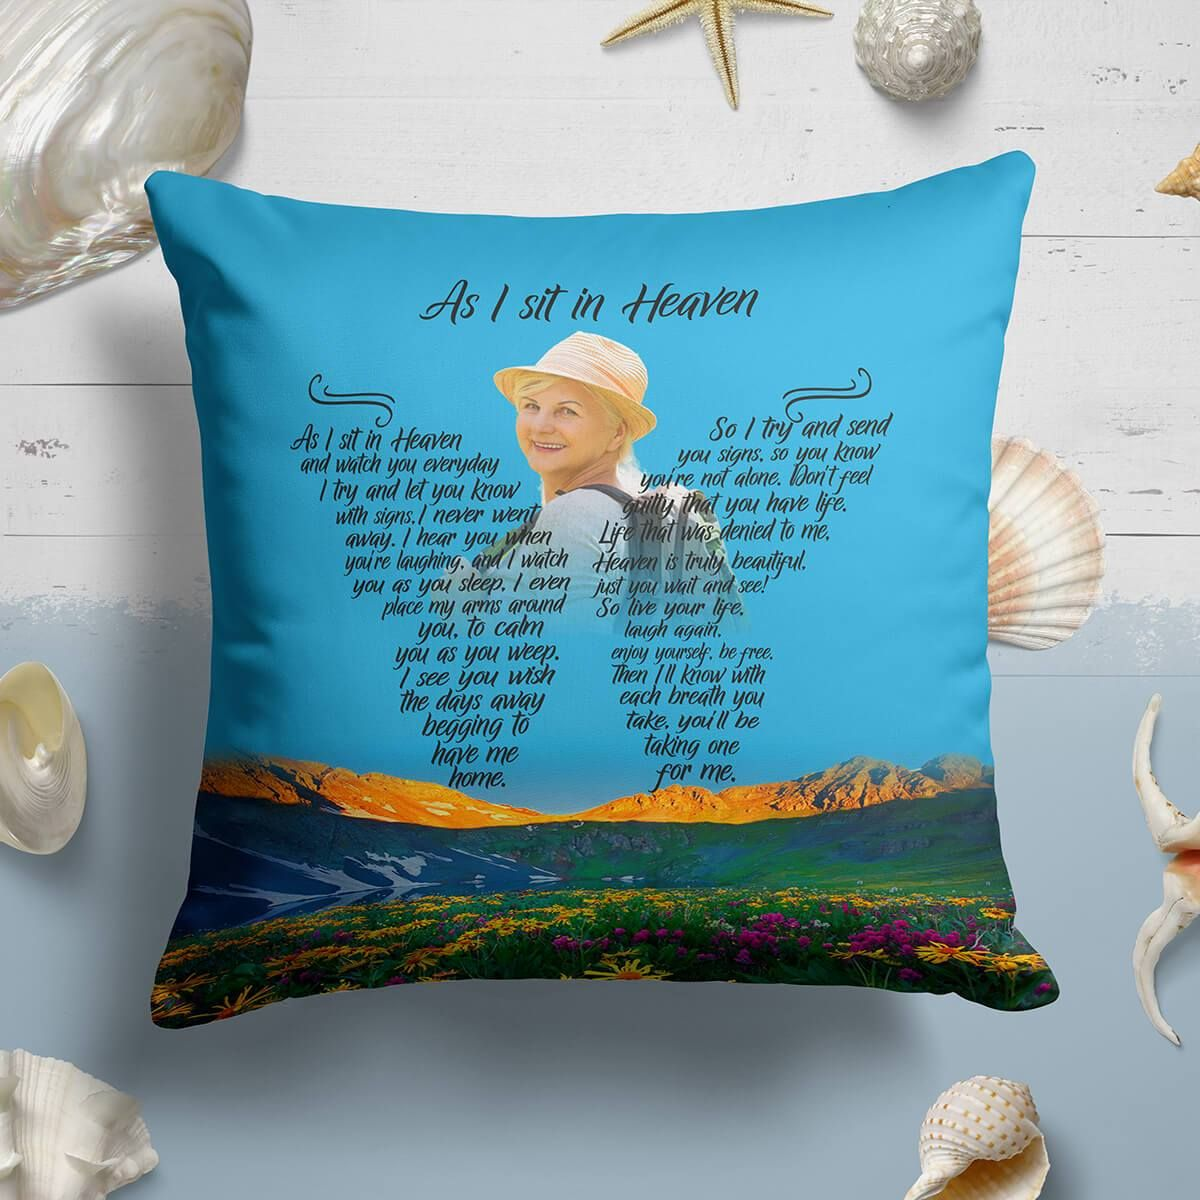 As I Sit In Heaven - Mountains Of Dreams Pillow - 20x20